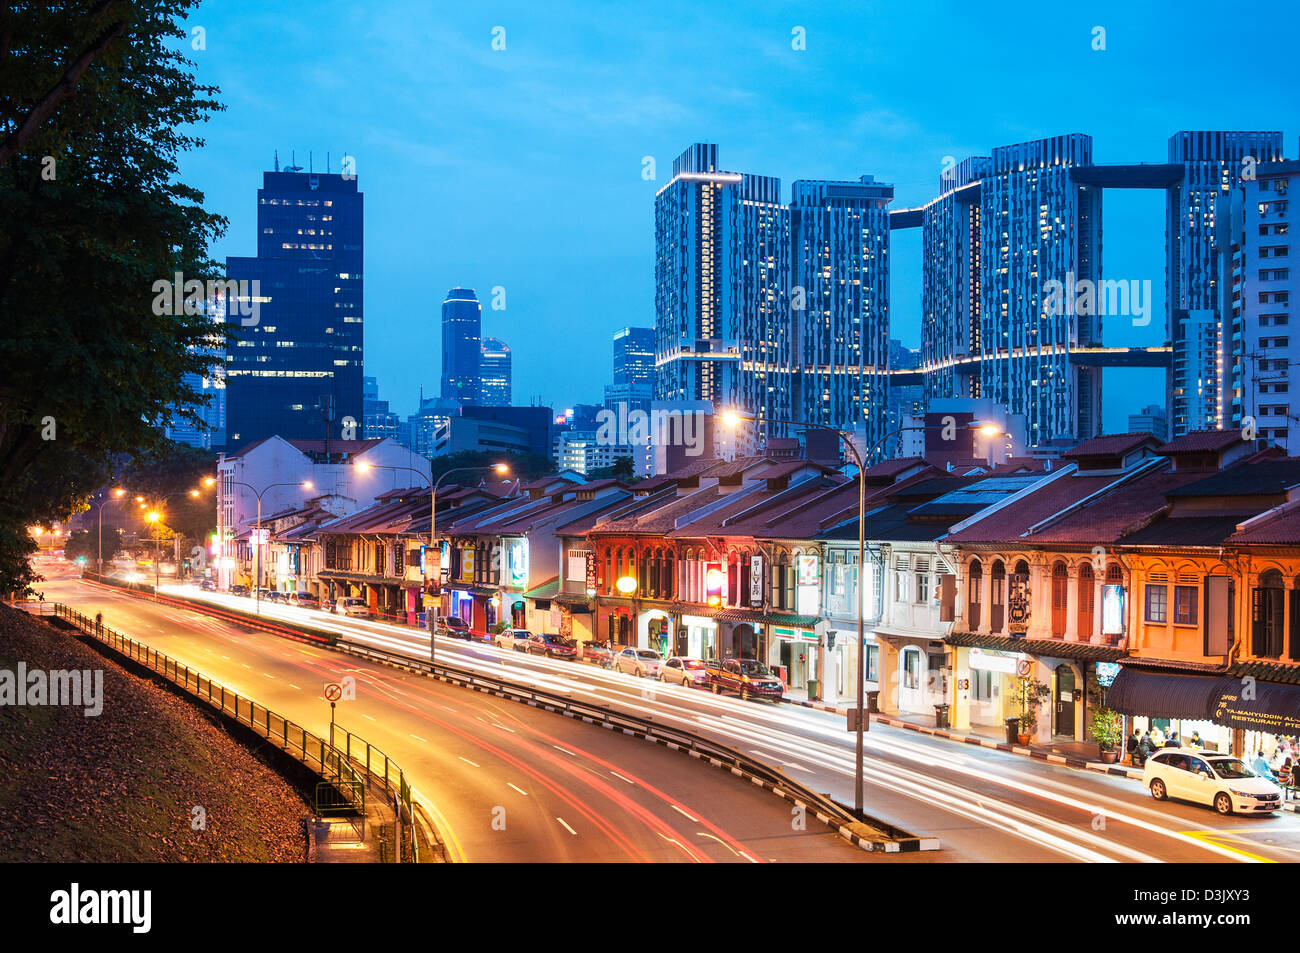 A view of Singapore's premier public housing - Stock Image